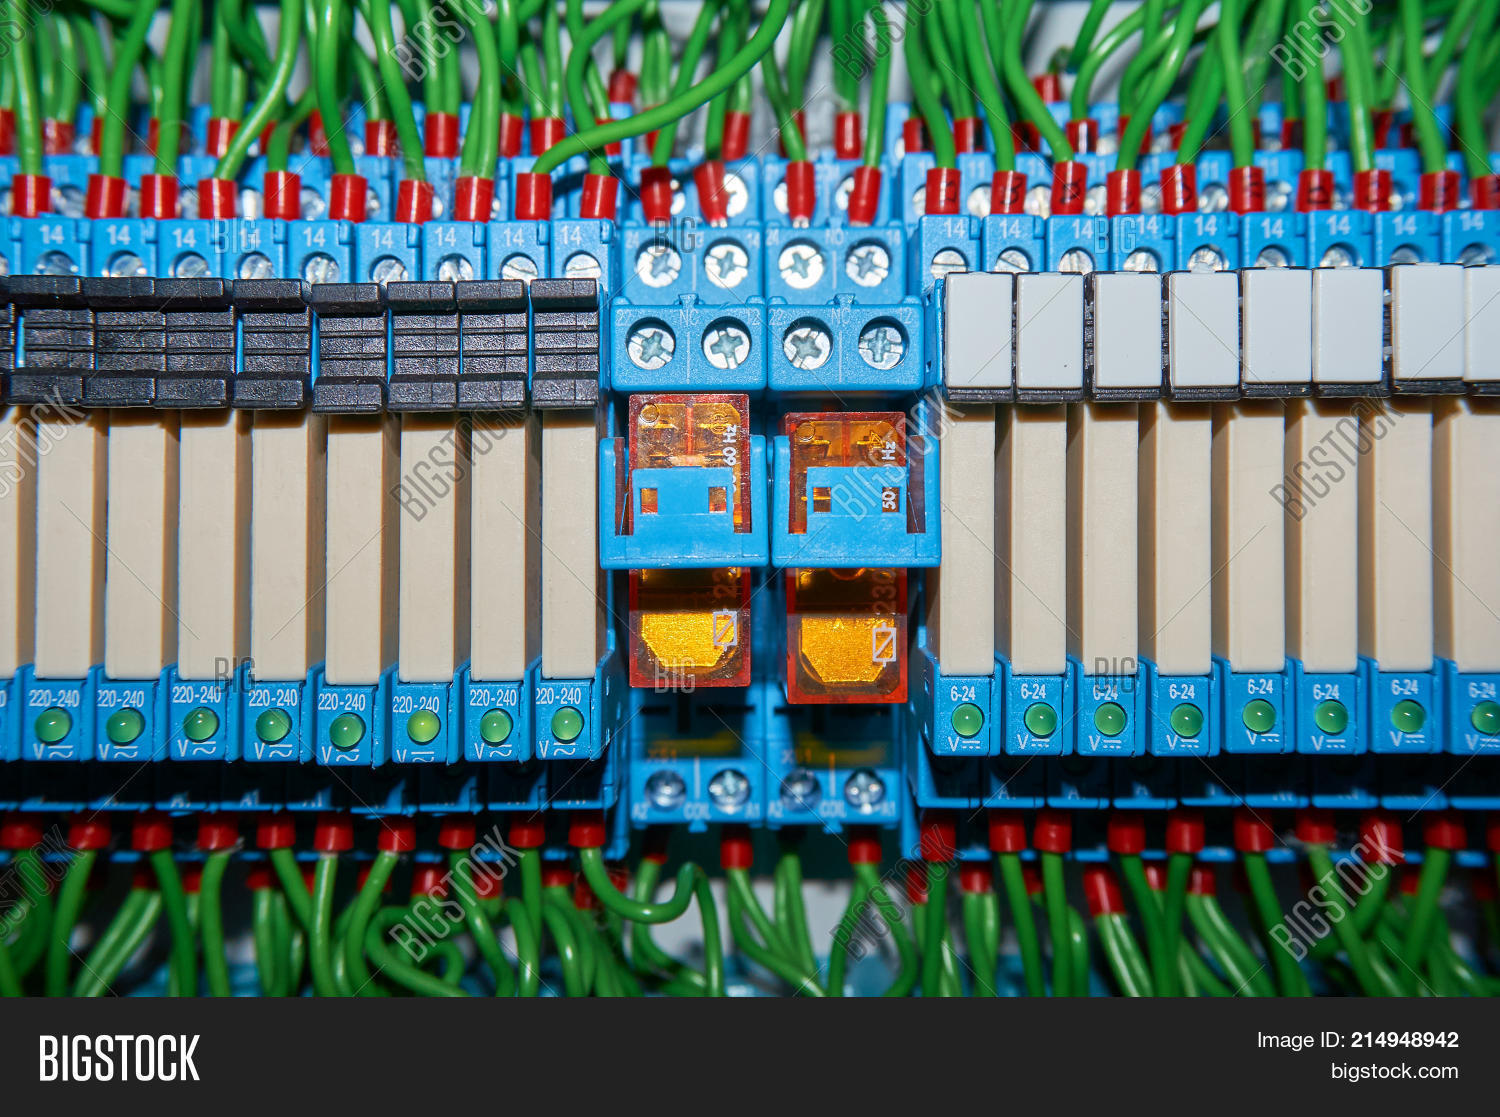 Some Electrical Relay Image Photo Free Trial Bigstock Panel Is Mounted On The Mounting Relays Inserted In Base Or